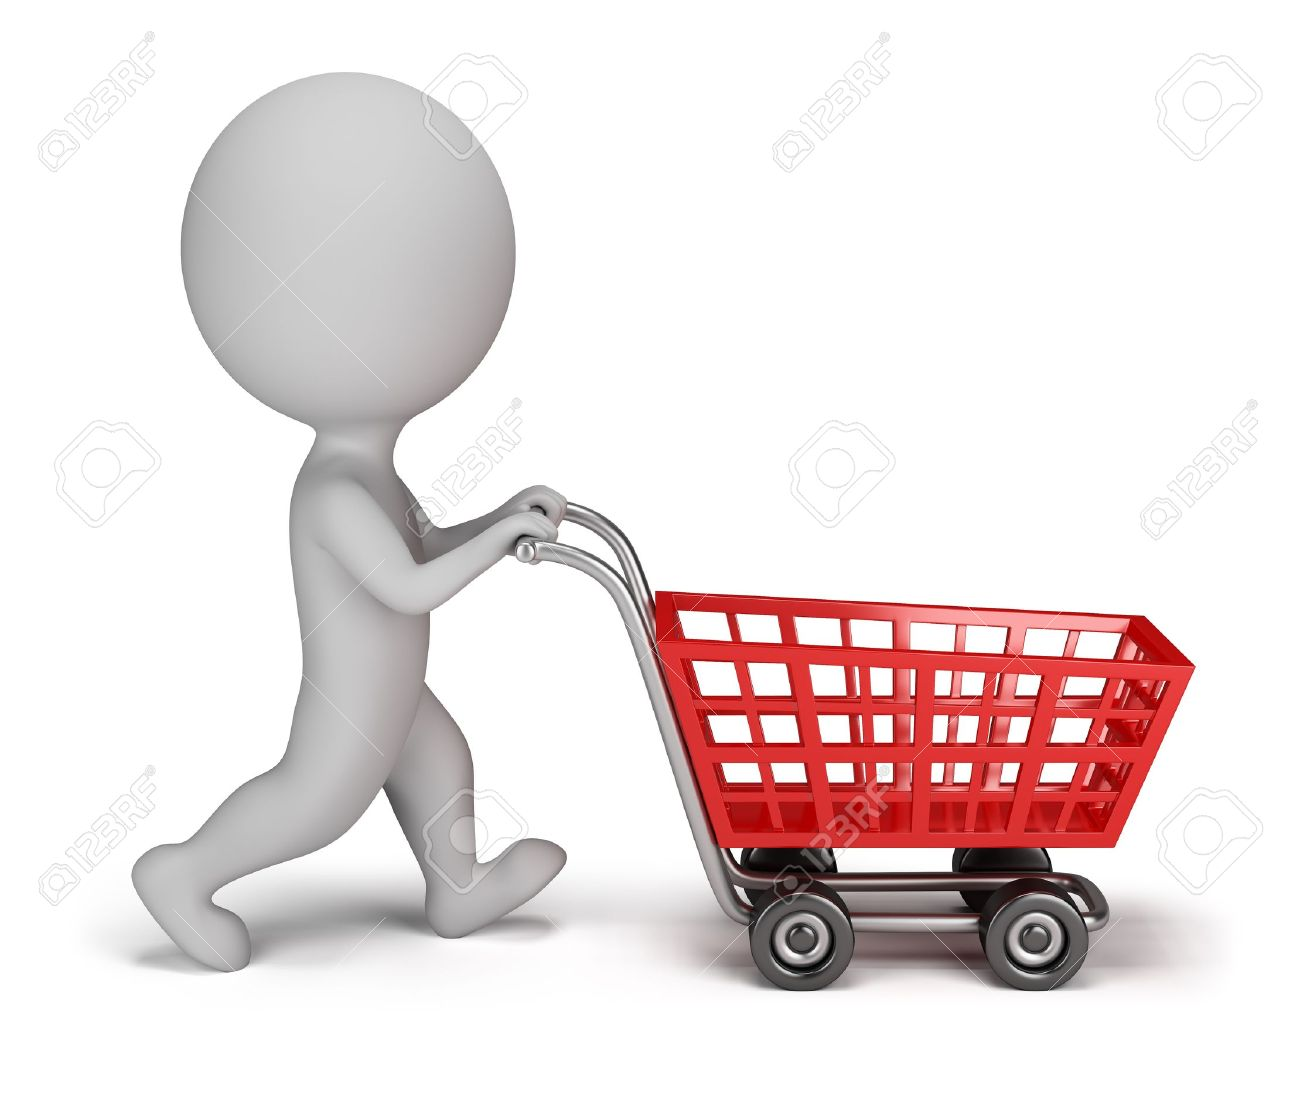 3d small person with a shopping cart  3d image  Isolated white background Stock Photo - 14723568